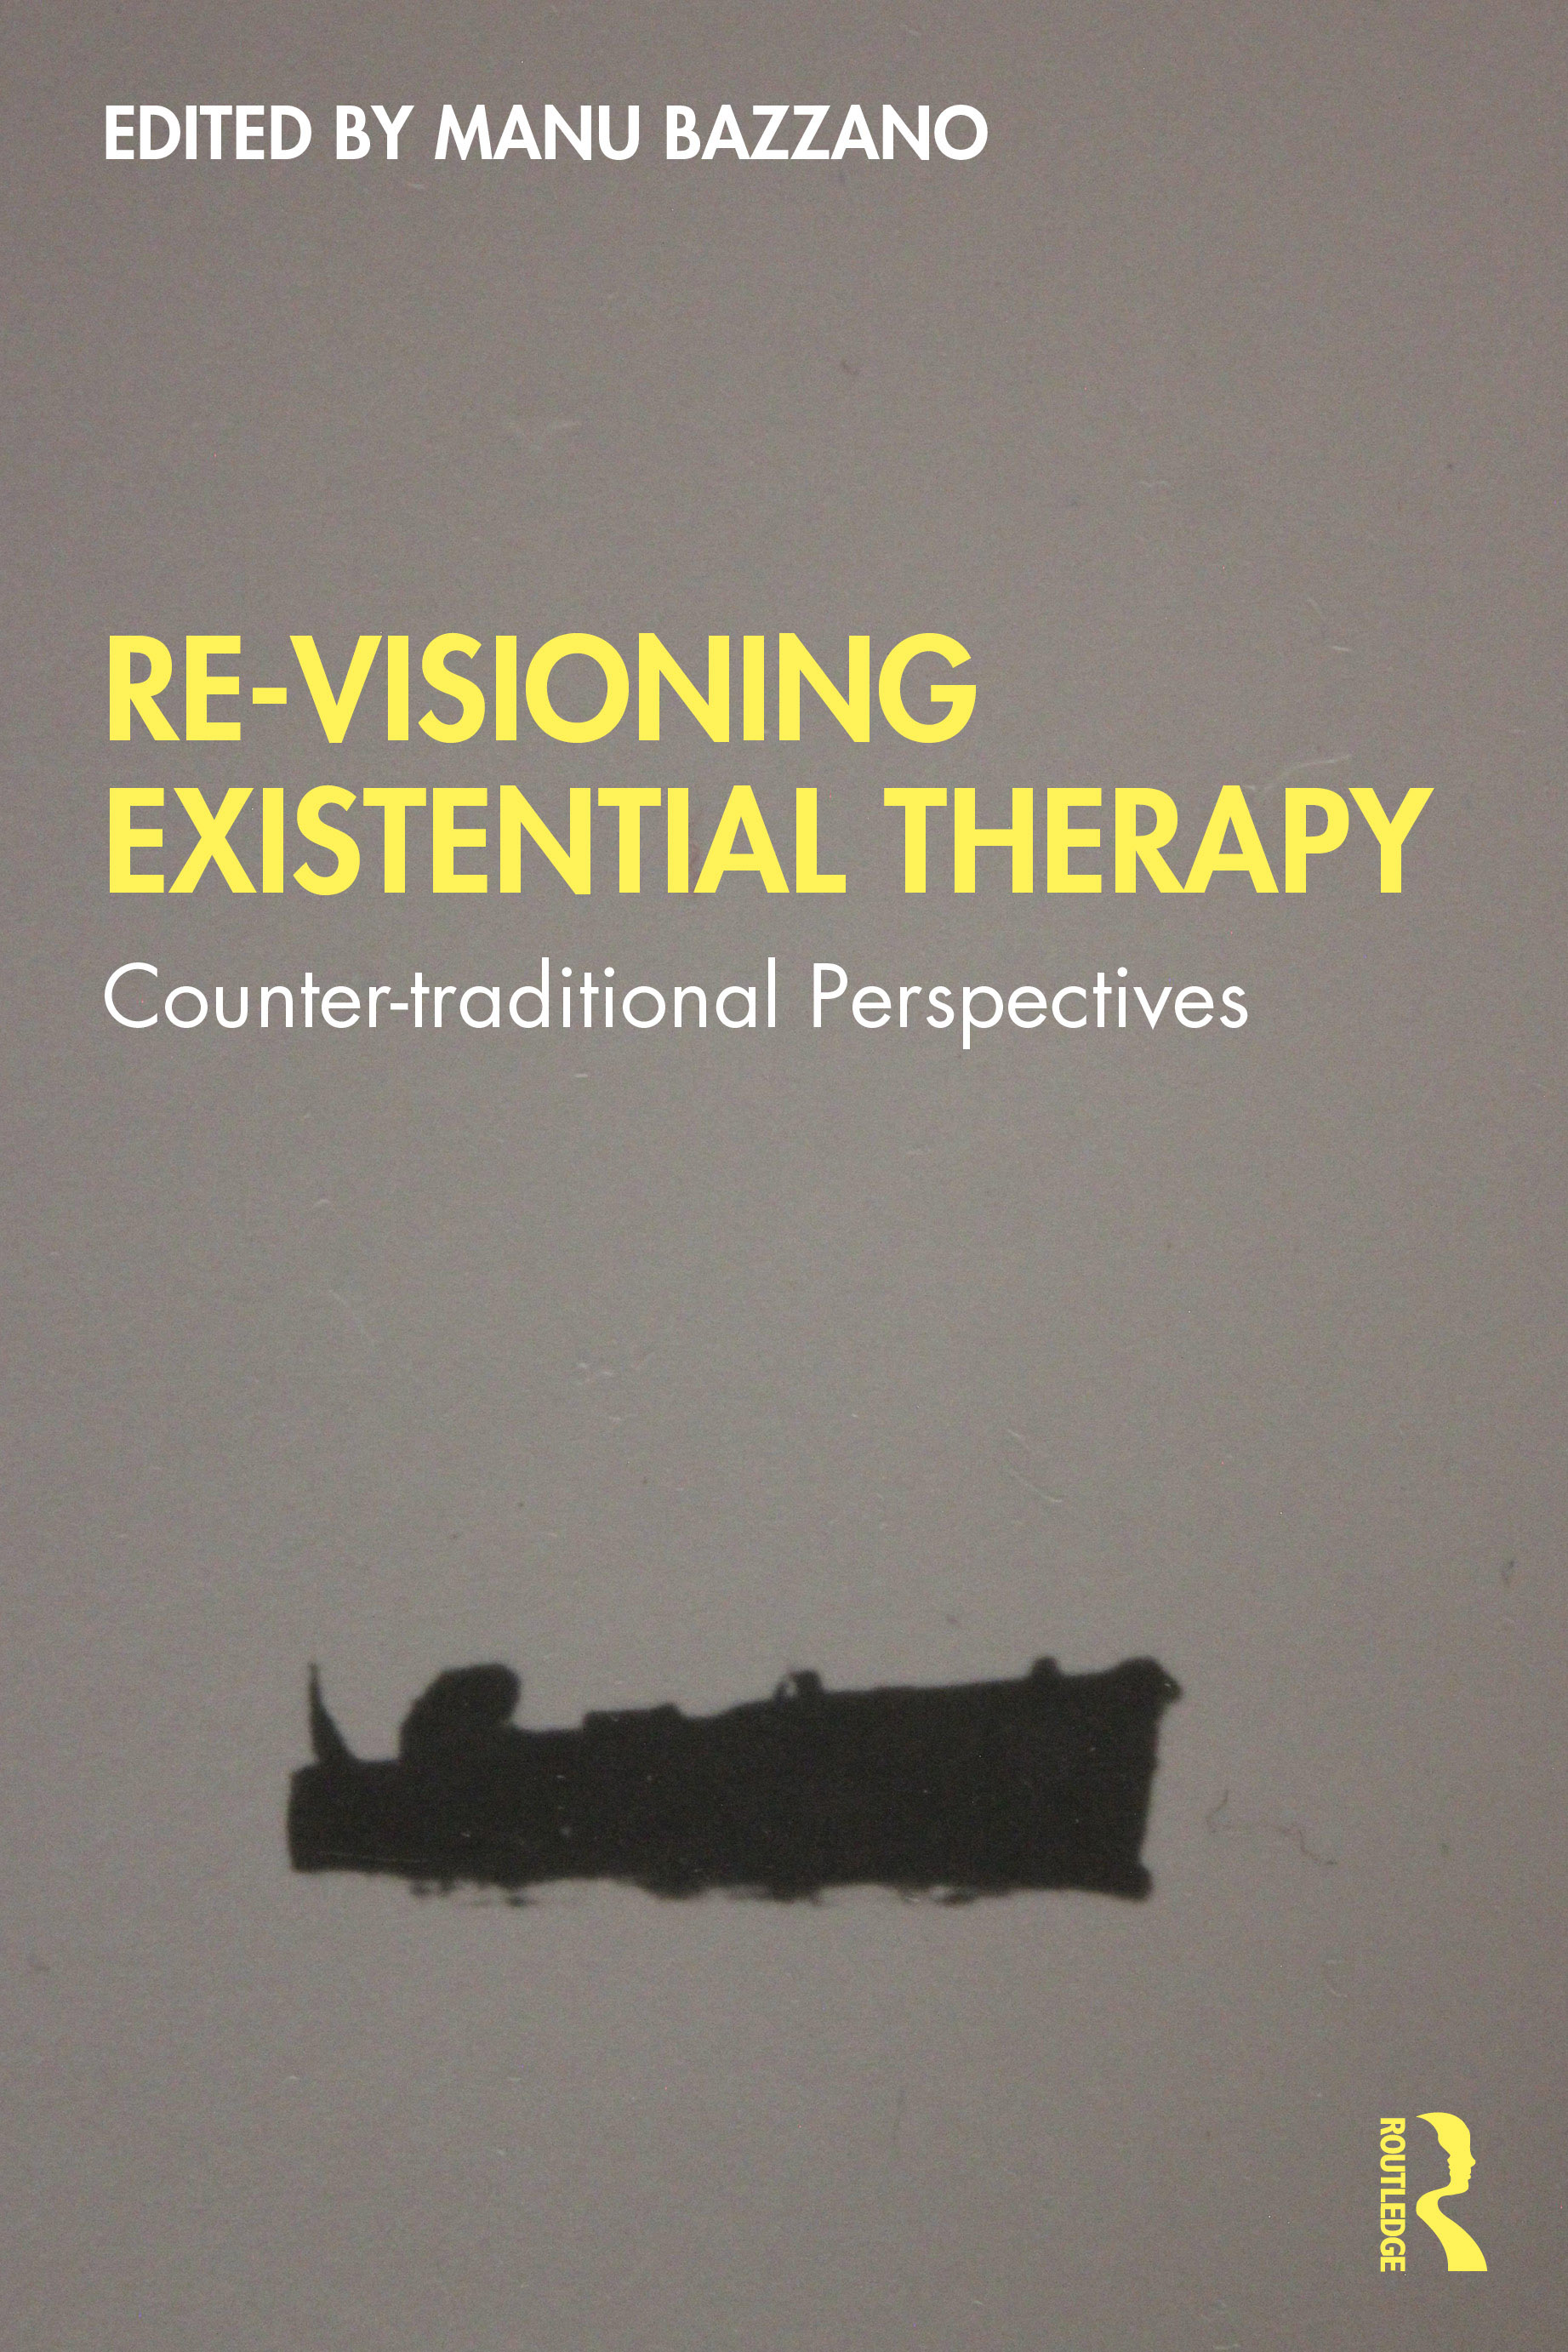 Re-Visioning Existential Therapy